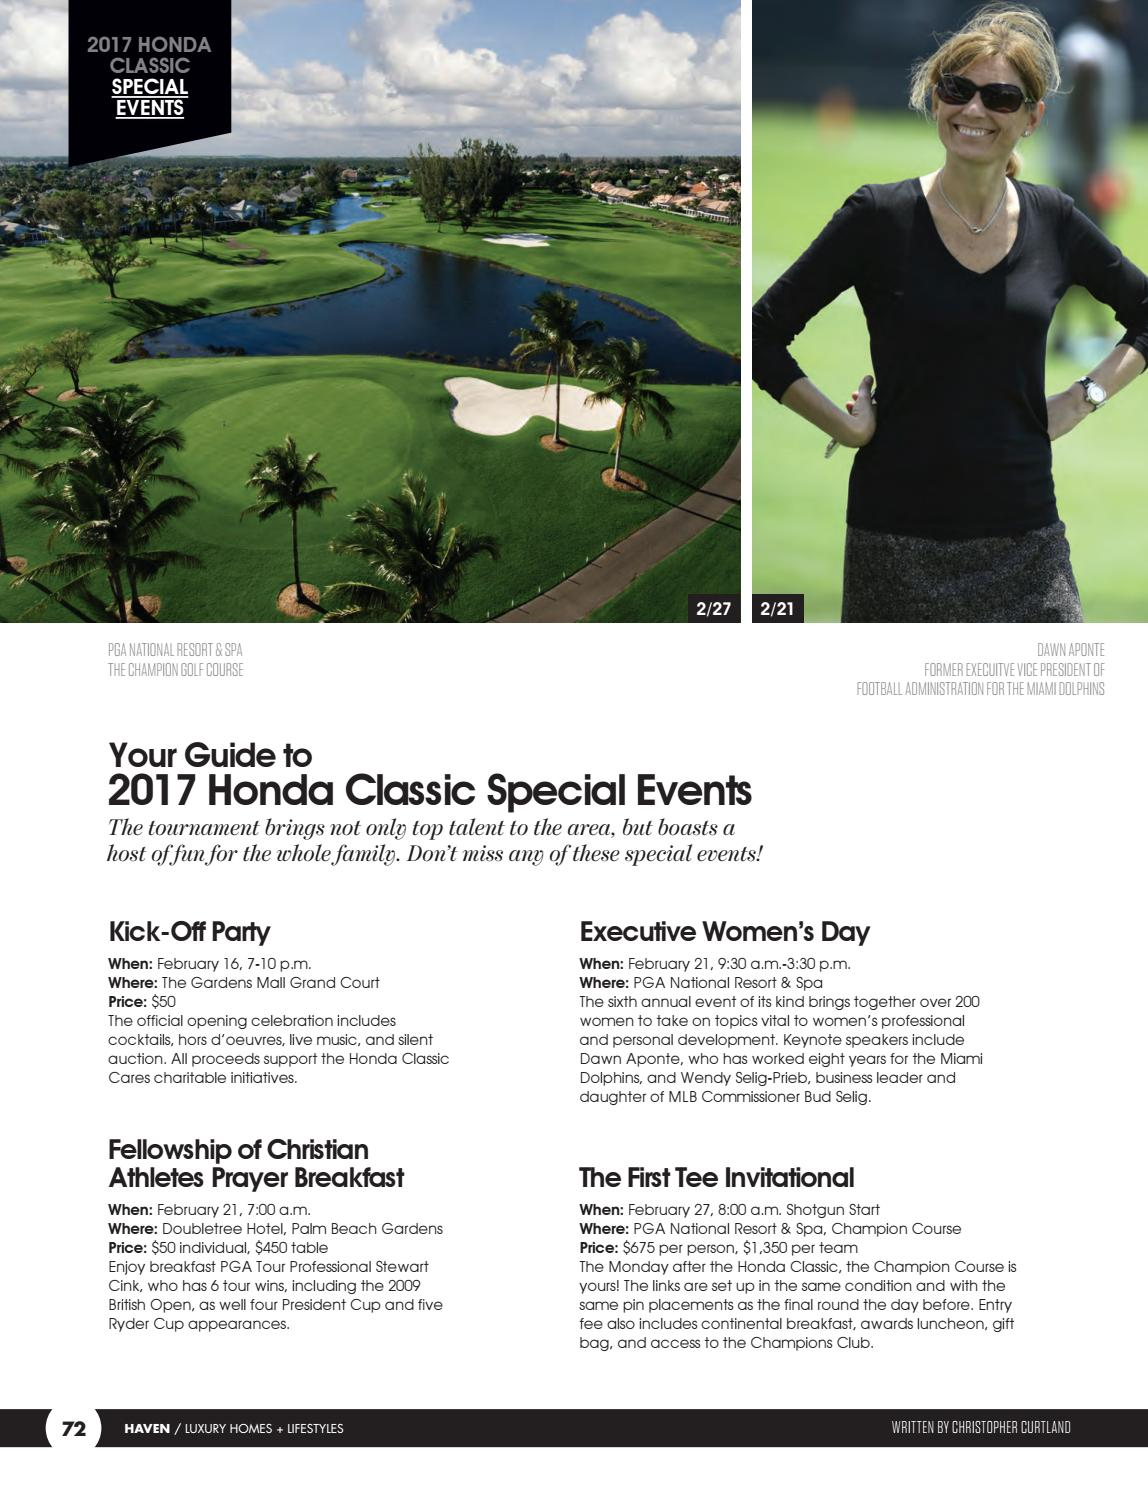 Haven Palm Beaches 2 17 The Honda Classic Edition Vebuka Com